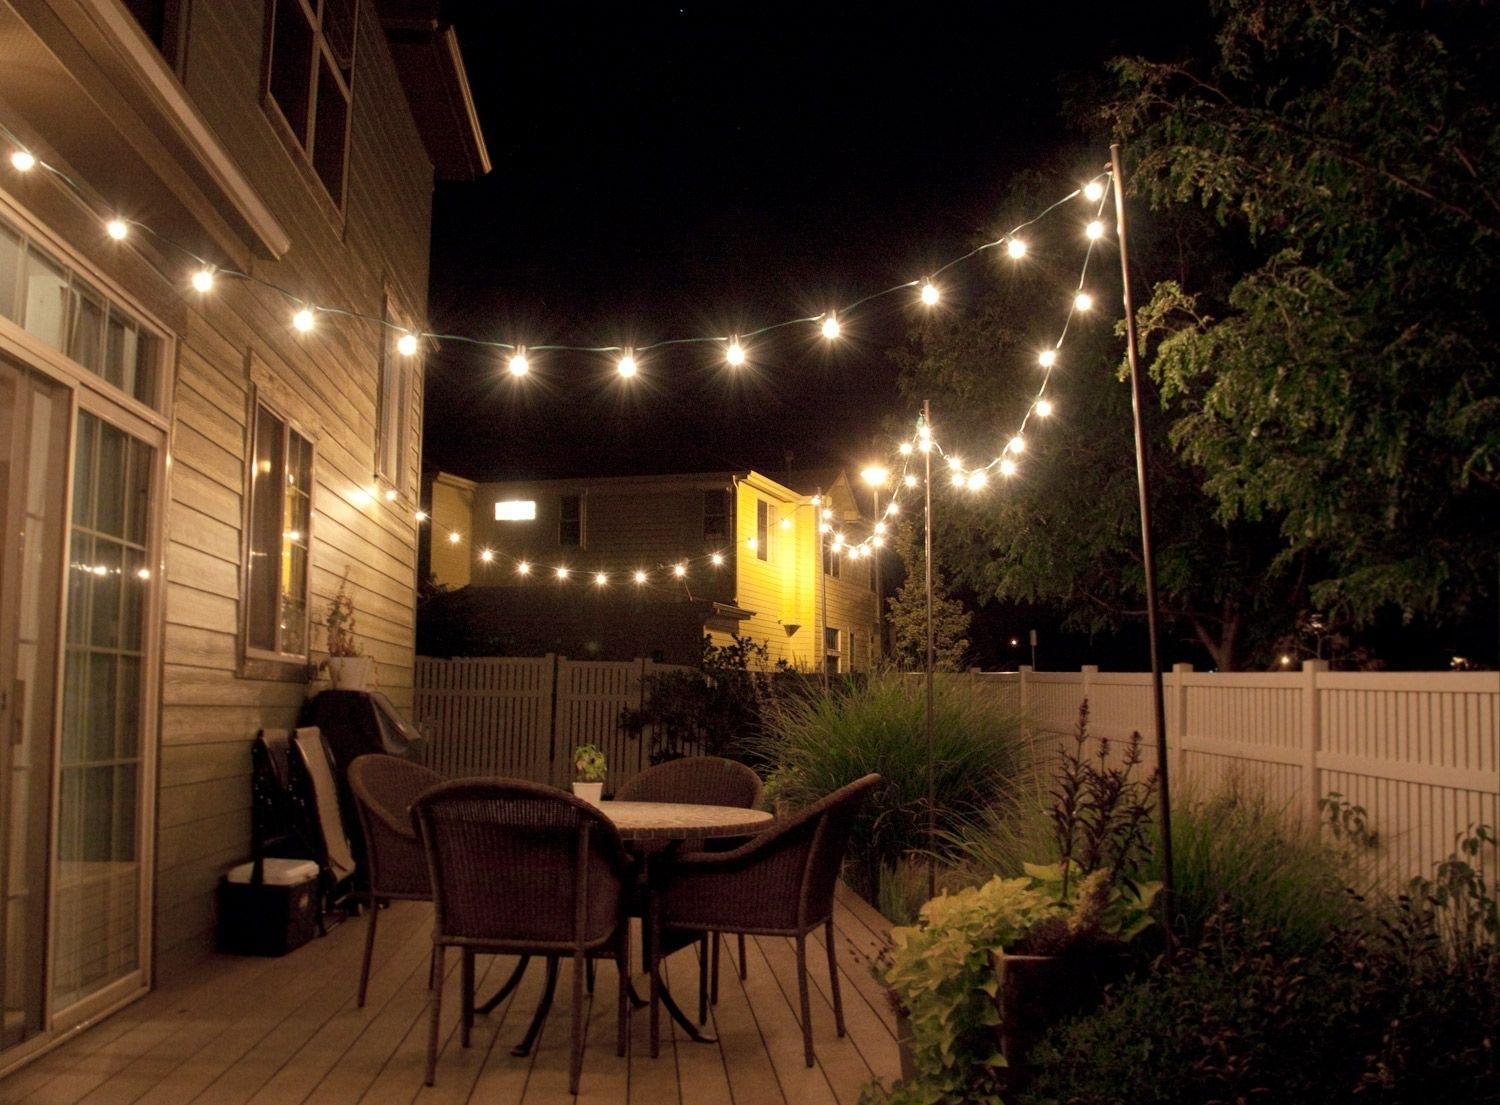 How To Make Inexpensive Poles To Hang String Lights On – Café Style With Outdoor Lanterns For Deck (View 3 of 20)